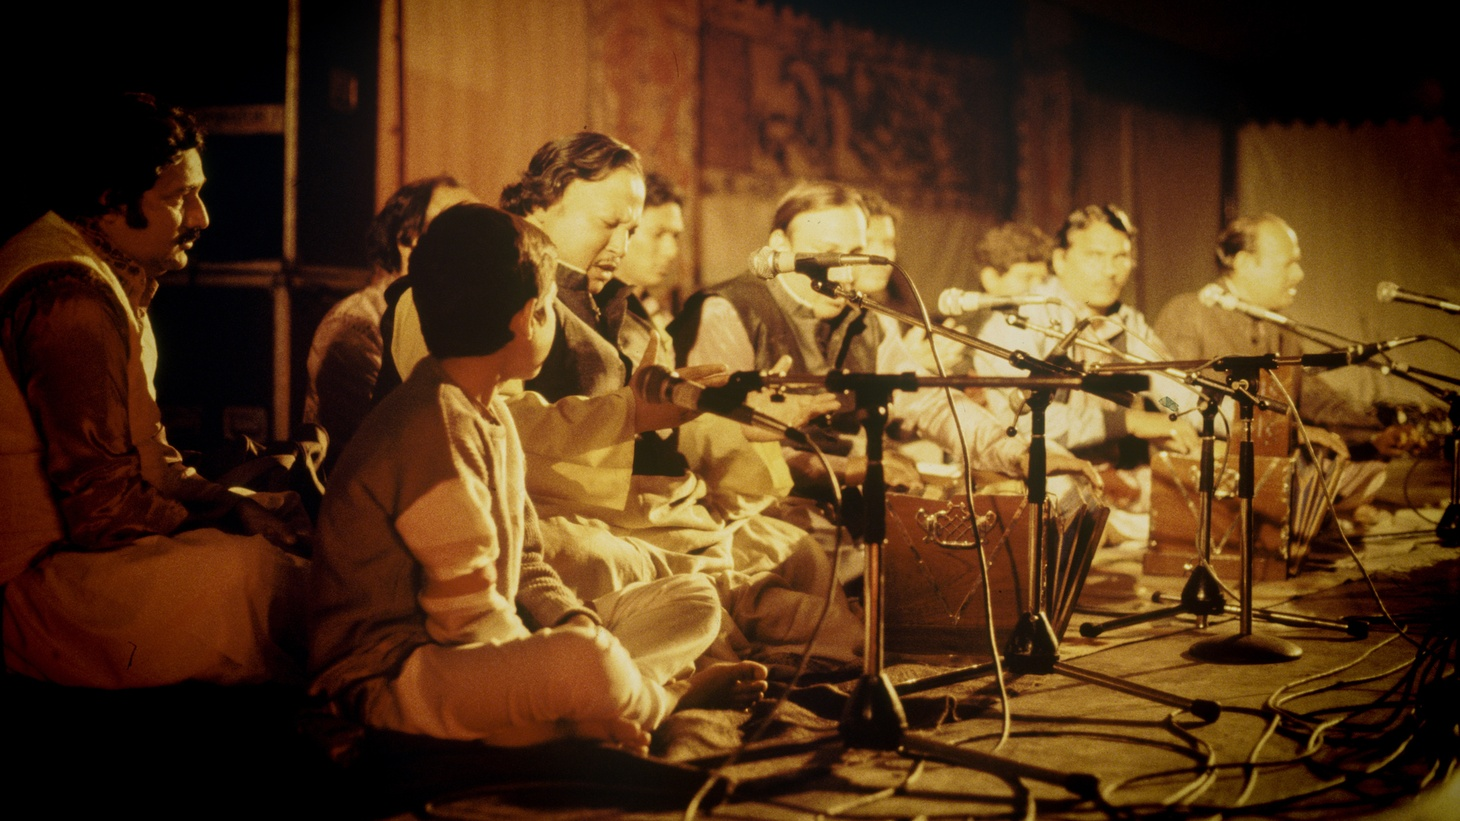 Nusrat Fateh Ali Khan and Party at WOMAD in 1985